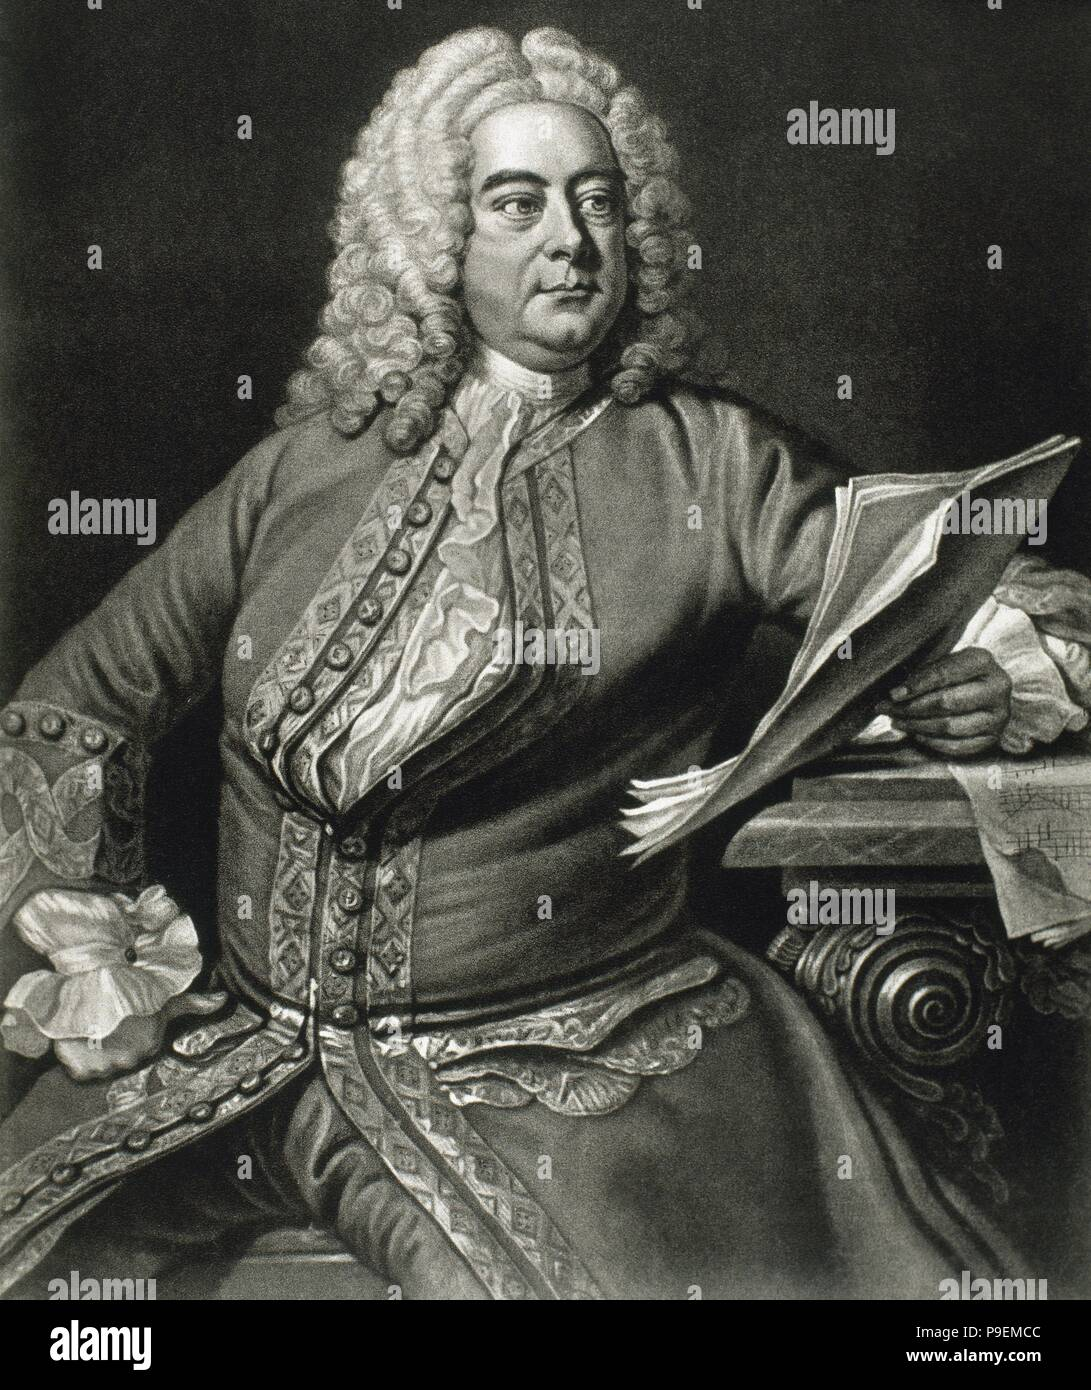 George Frideric Handel (1685-1759). German, later British, baroque  composer. Portrait. Engraving. Inspired on a portrait by Thomas Hudson in  1749.